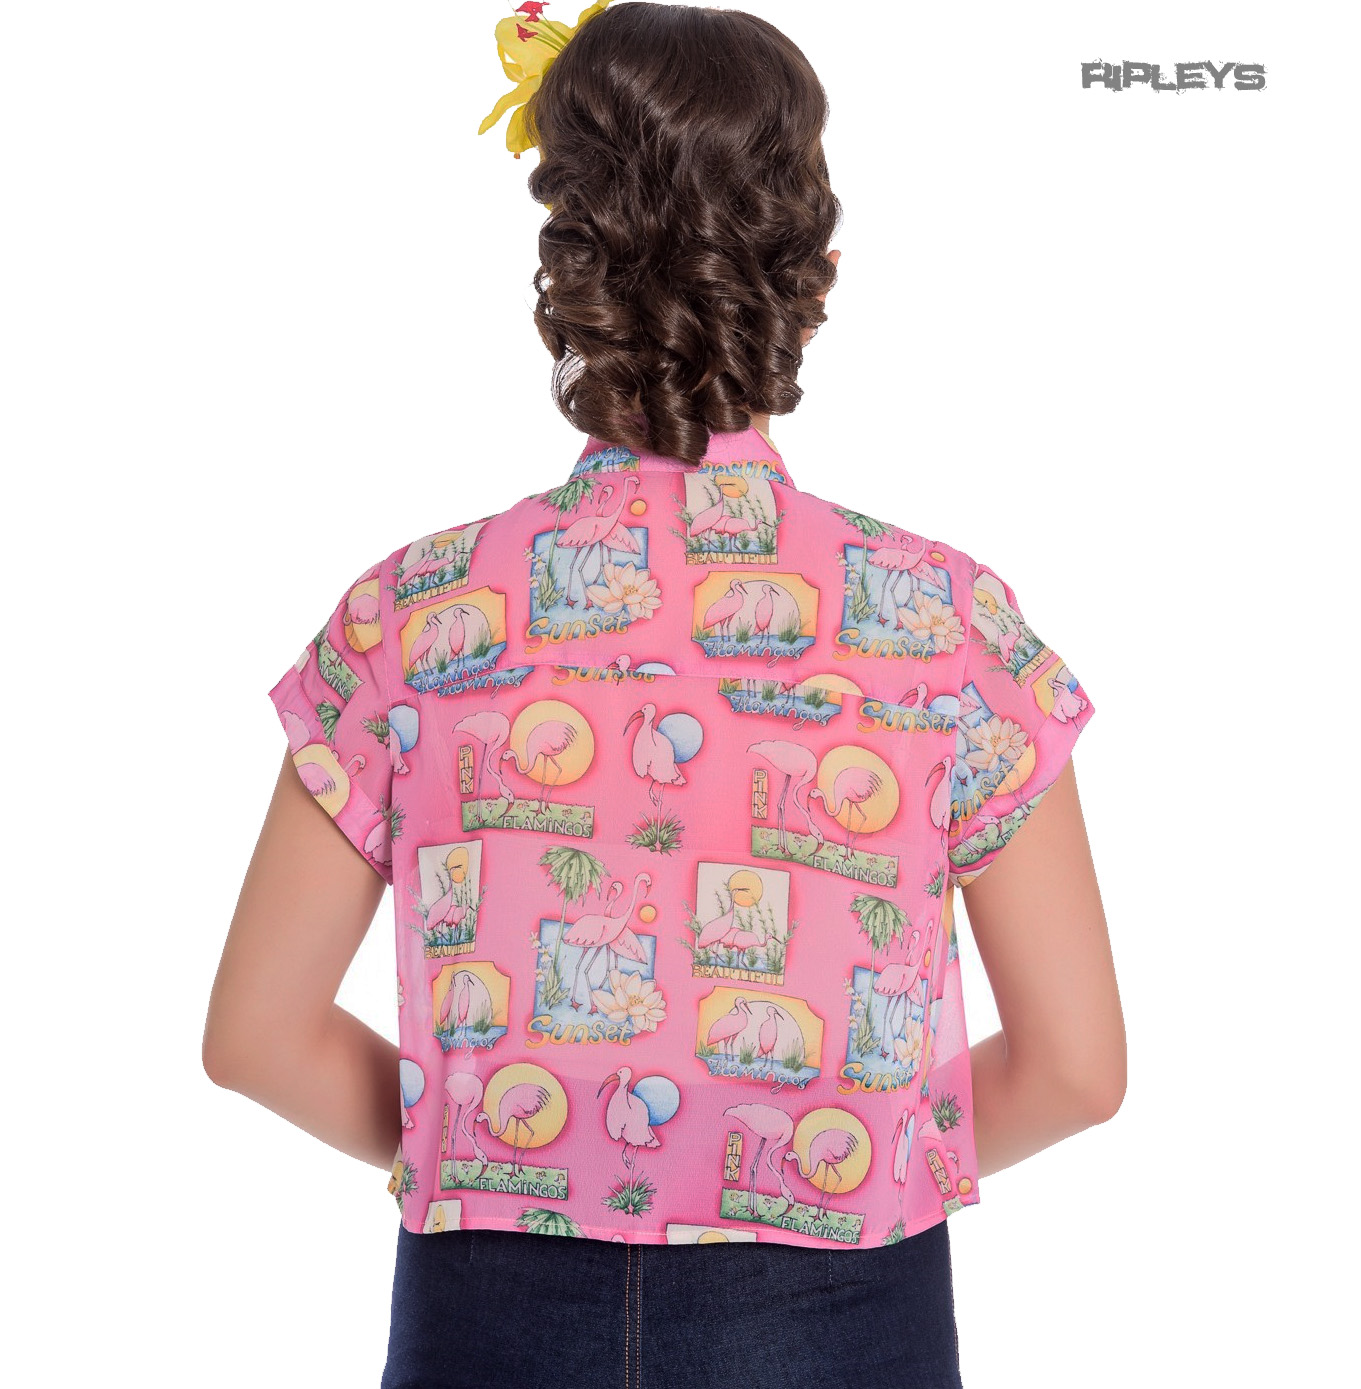 Hell-Bunny-50s-Retro-Top-Pink-Flamingo-MAXINE-Cropped-Blouse-Shirt-All-Sizes thumbnail 20